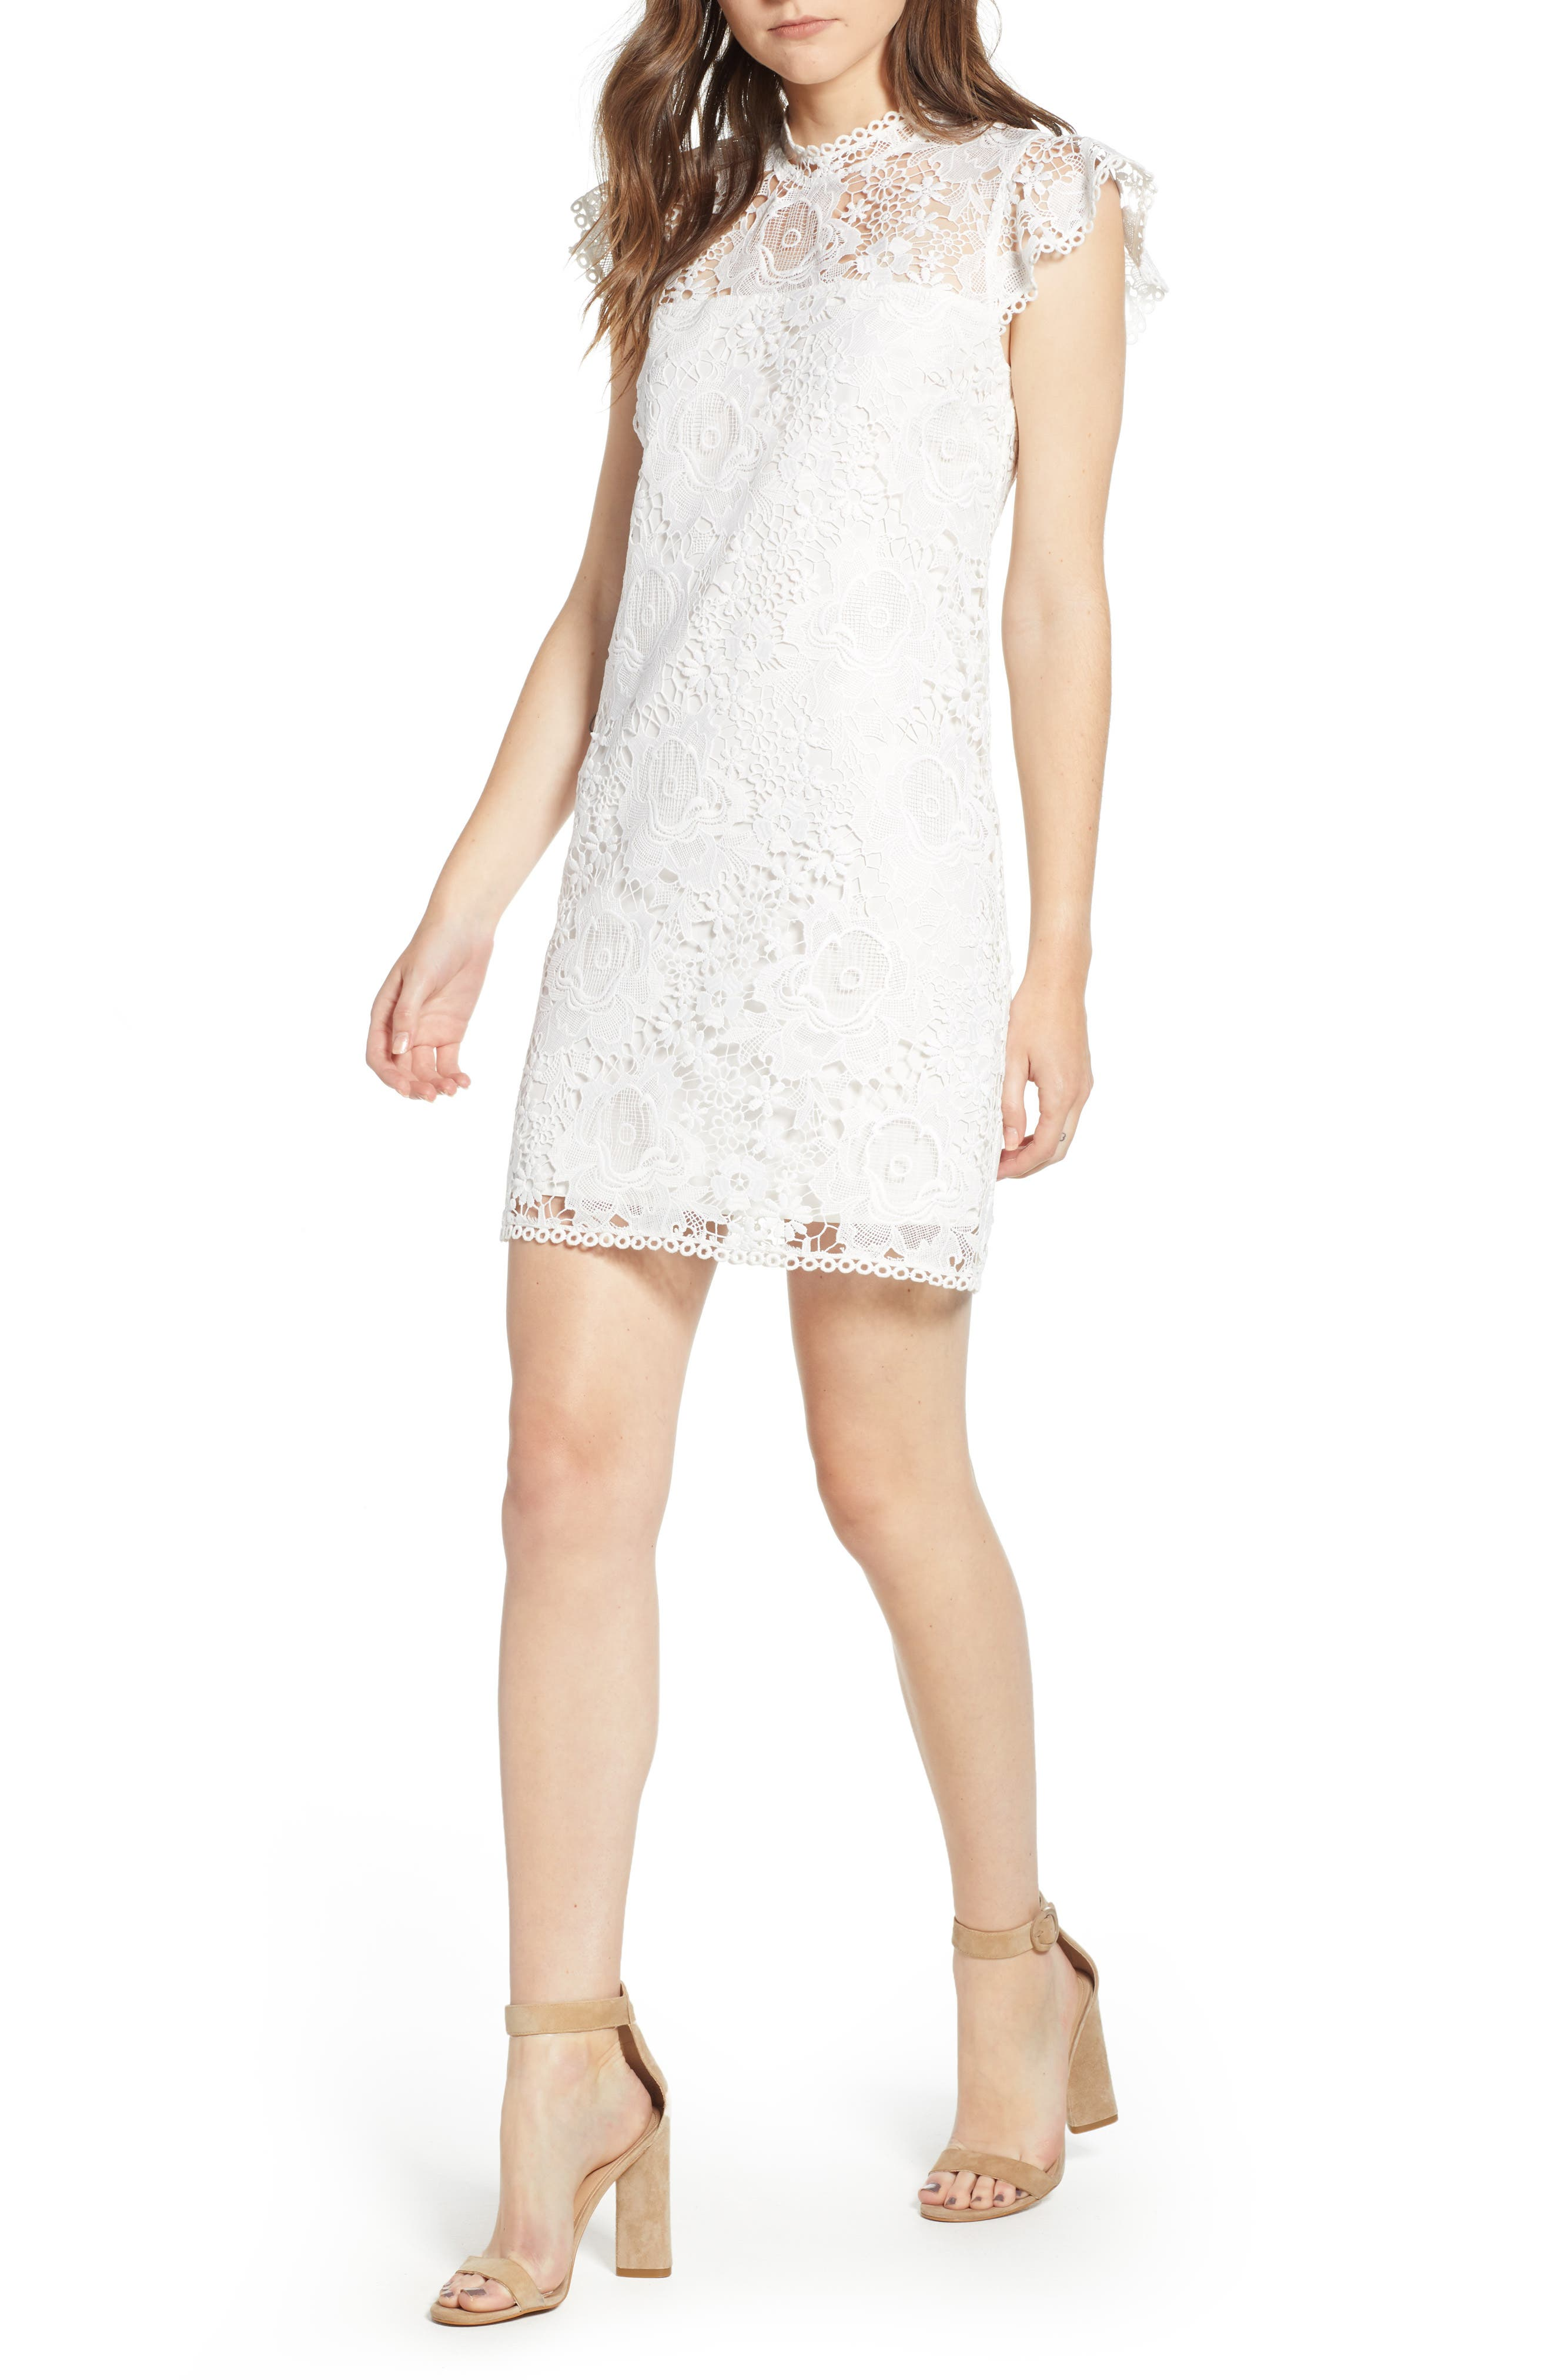 CUPCAKES AND CASHMERE, Floral Lace Shift Dress, Main thumbnail 1, color, WHITE